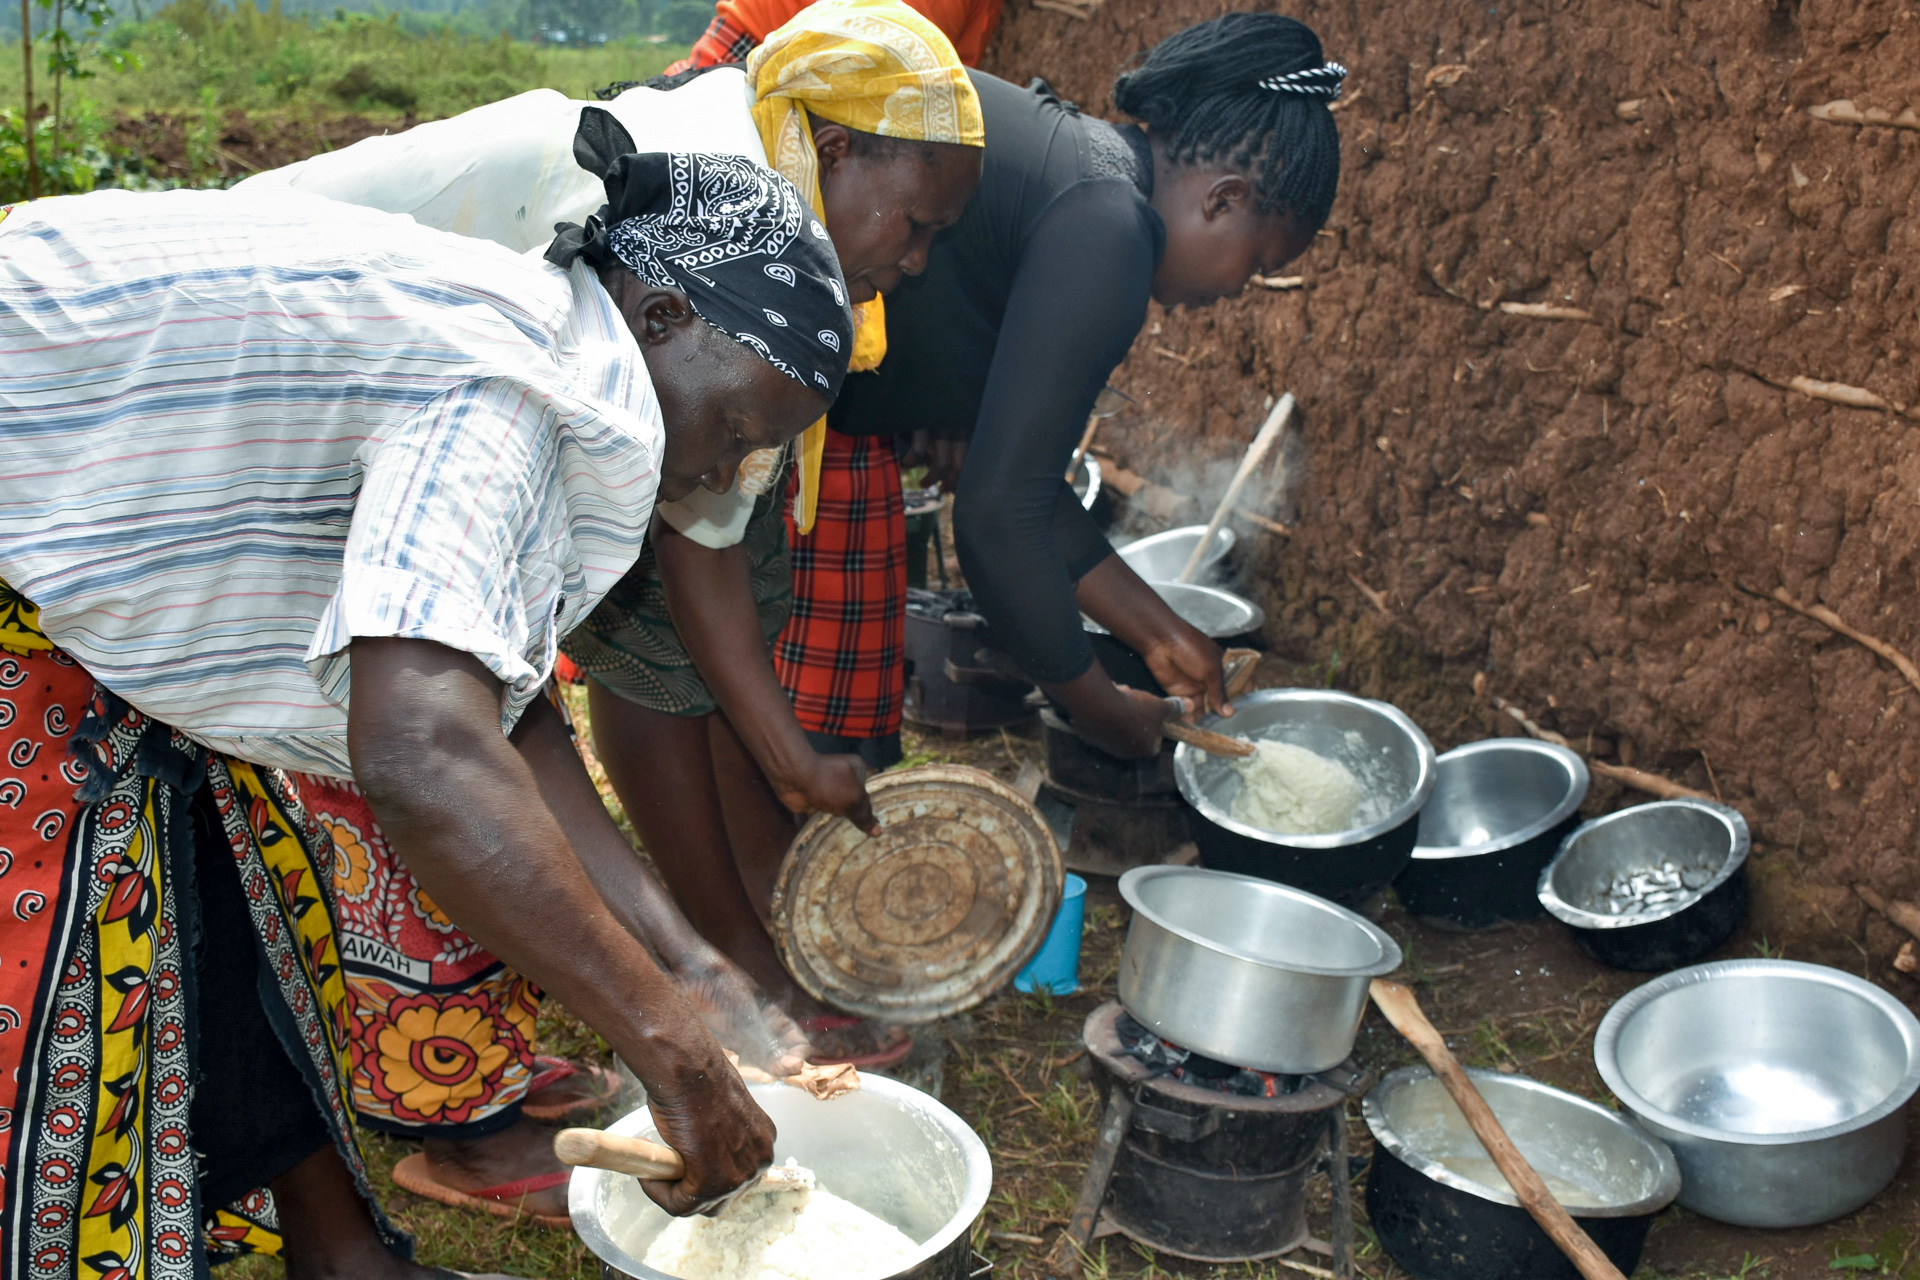 Cooks prepare ugali, or maize flour porridge, with different maize varieties at a sensory evaluation in Kakamega County, Kenya. (Photo: Joshua Masinde/CIMMYT)